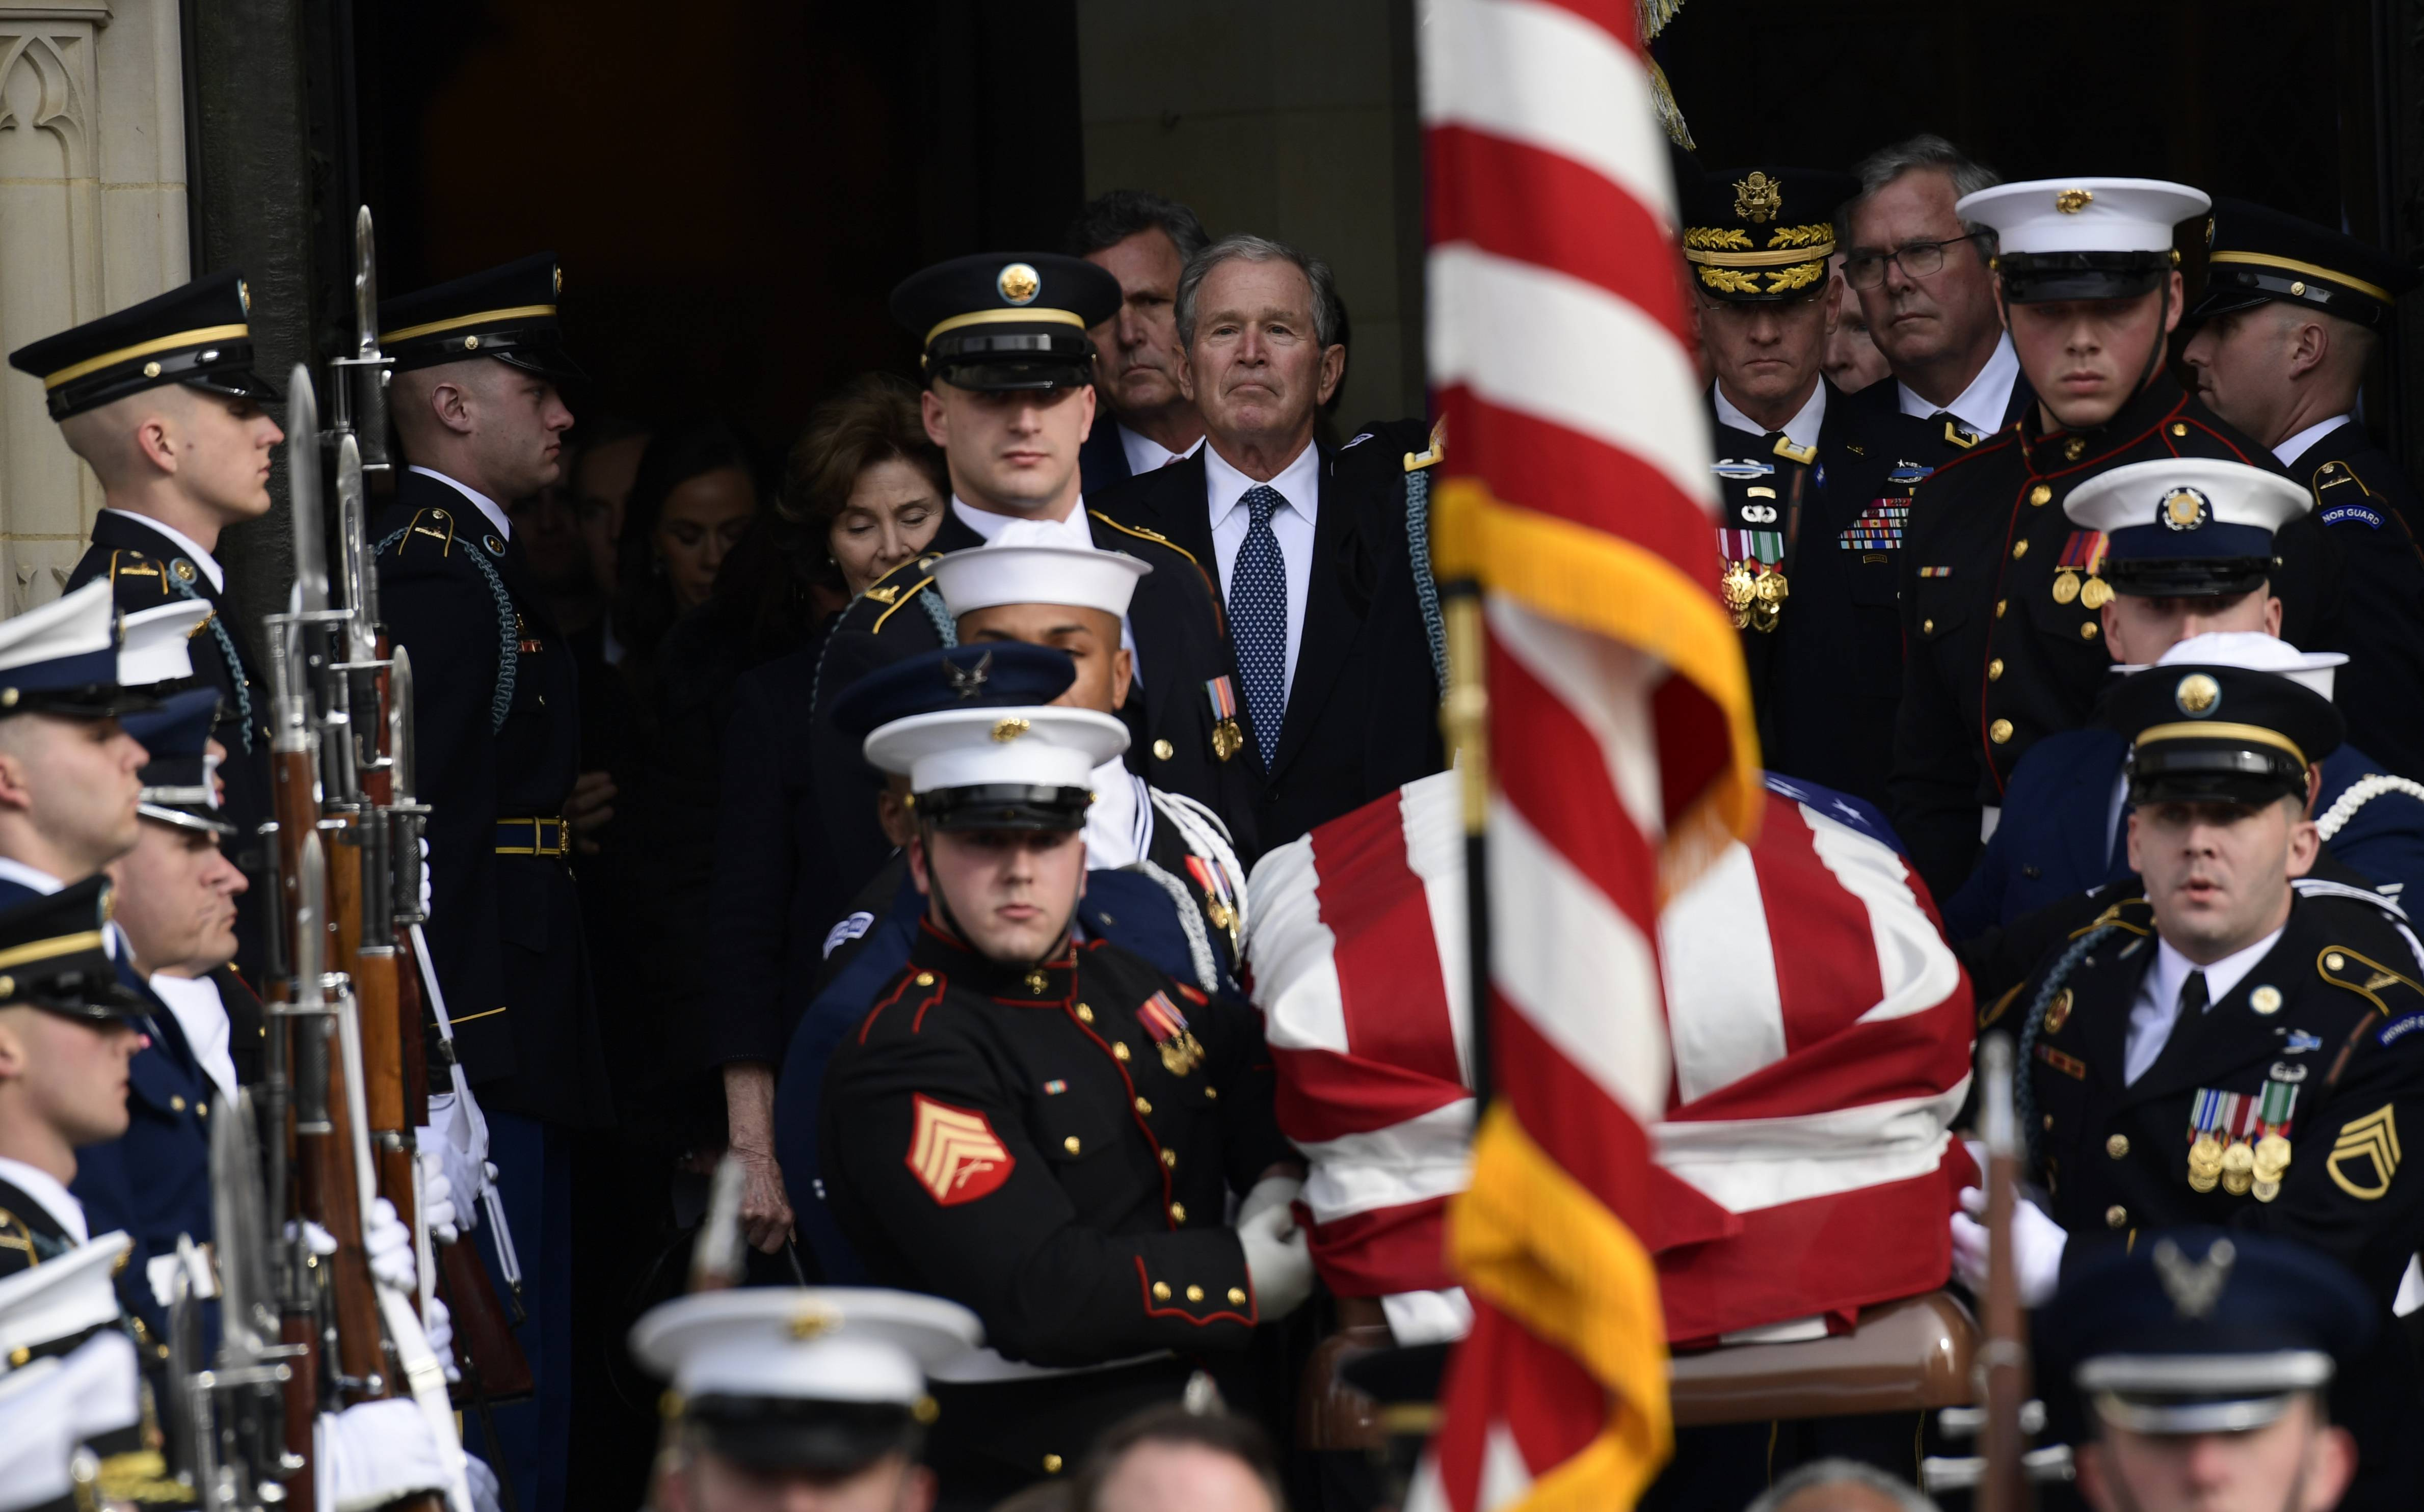 Former President George W. Bush, center, and his wife, Laura Bush, watch Wednesday as the casket of former President George H.W. Bush is carried out after a State Funeral at the National Cathedral in Washington.